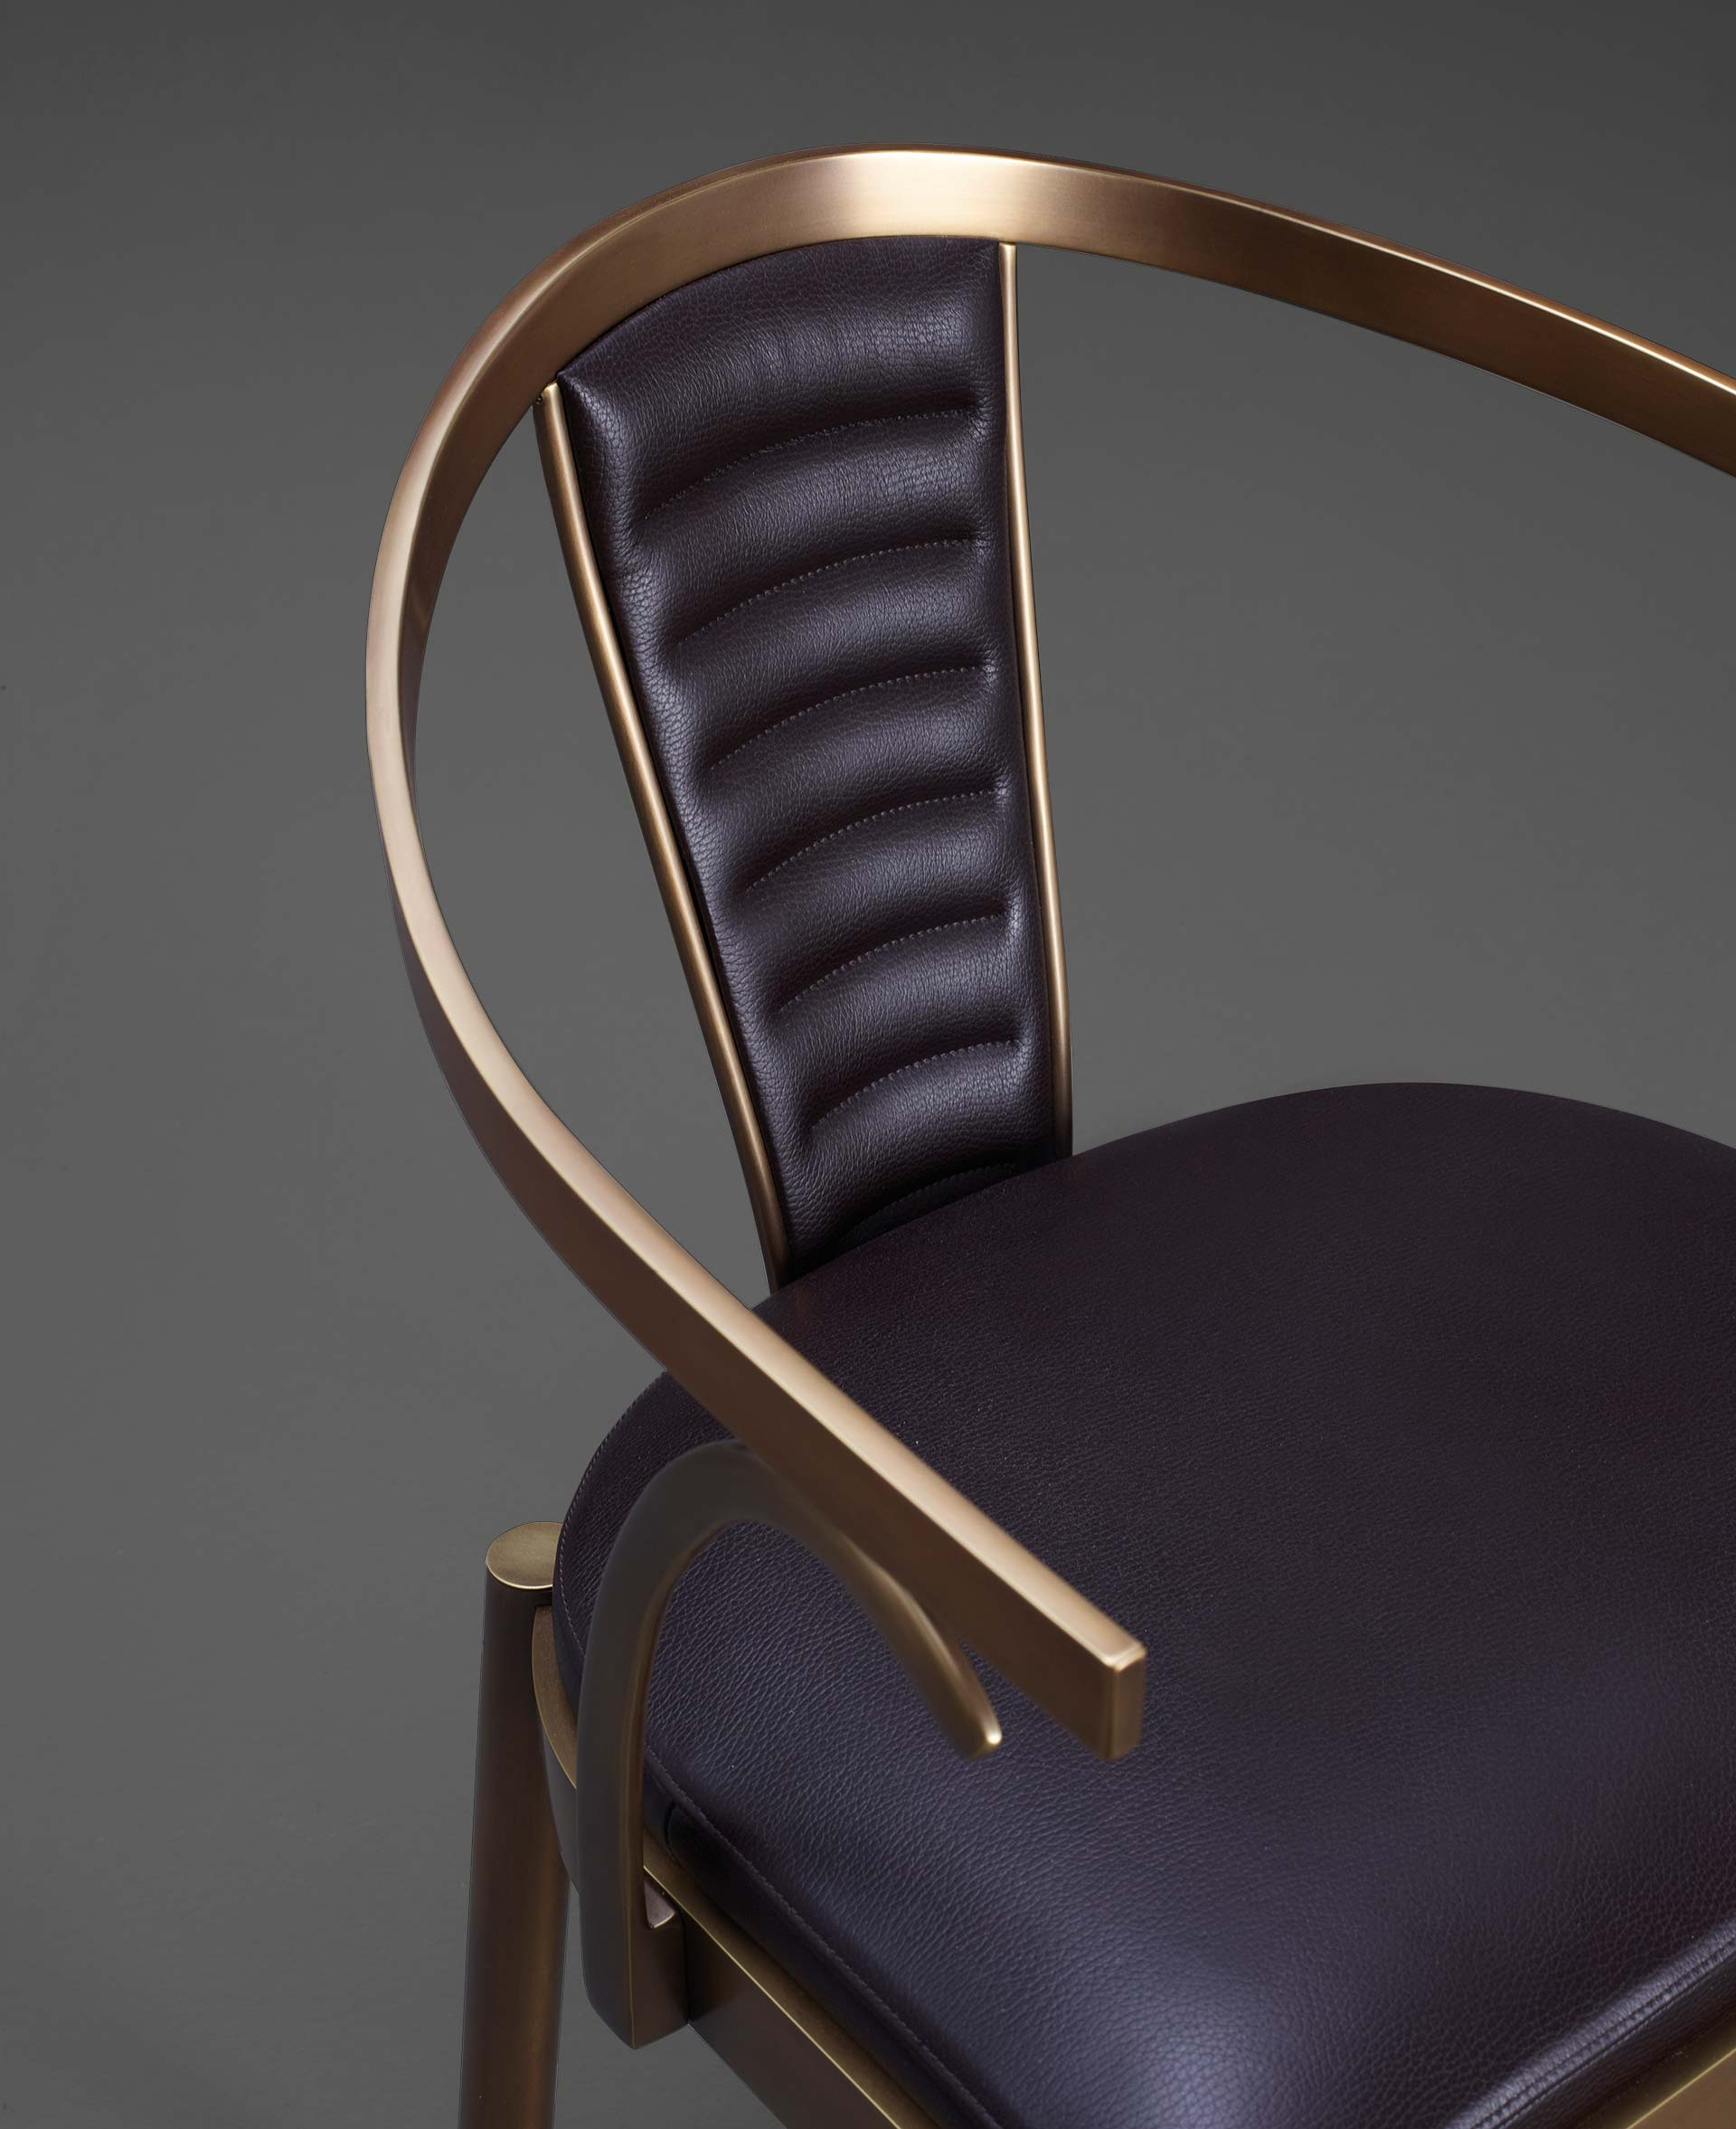 Detail of Jasmine, a bronze dining chair with armrests covered in leather, from Promemoria's catalogue | Promemoria